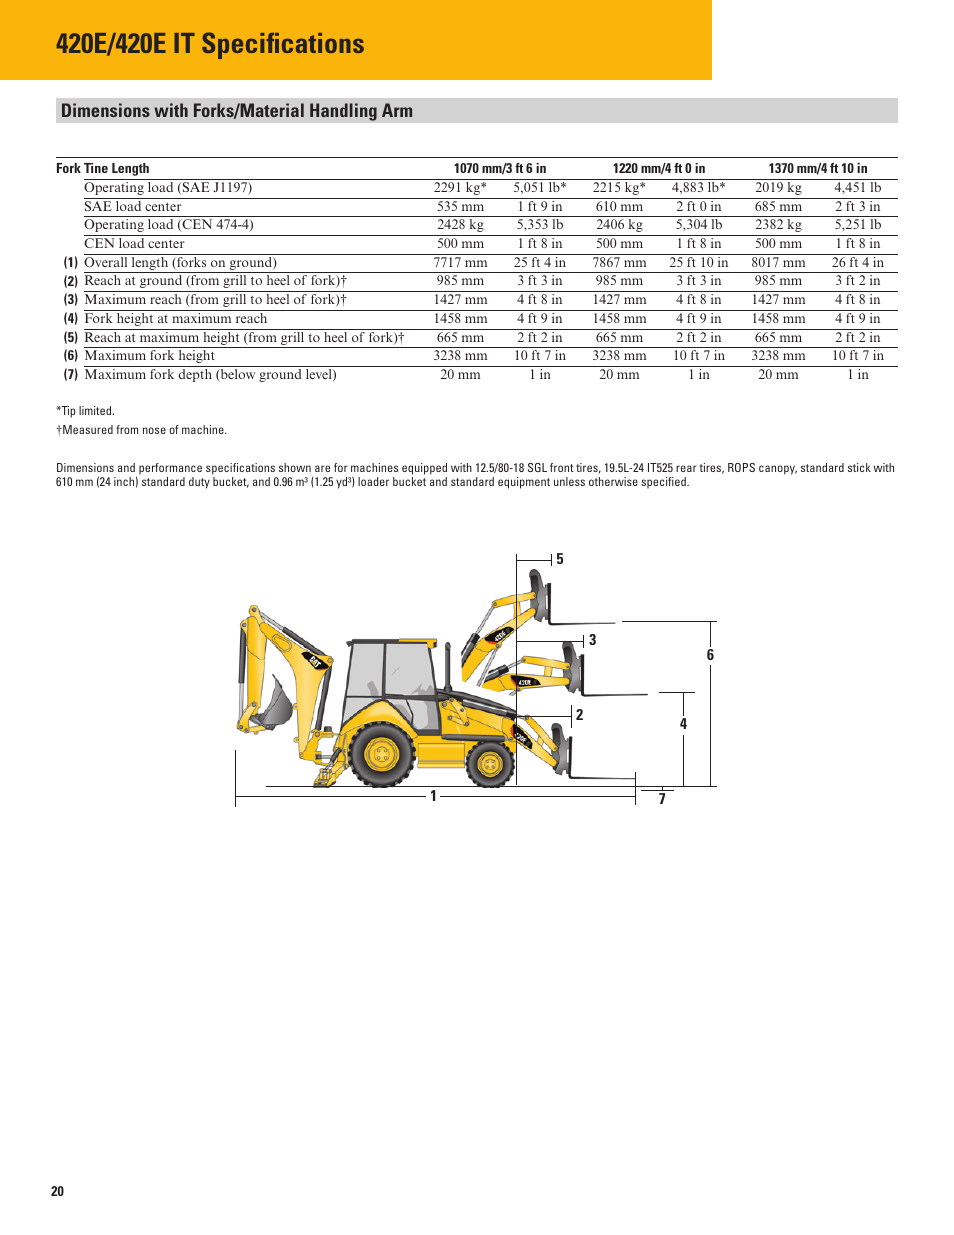 Dimensions with forks/material handling arm | Milton CAT